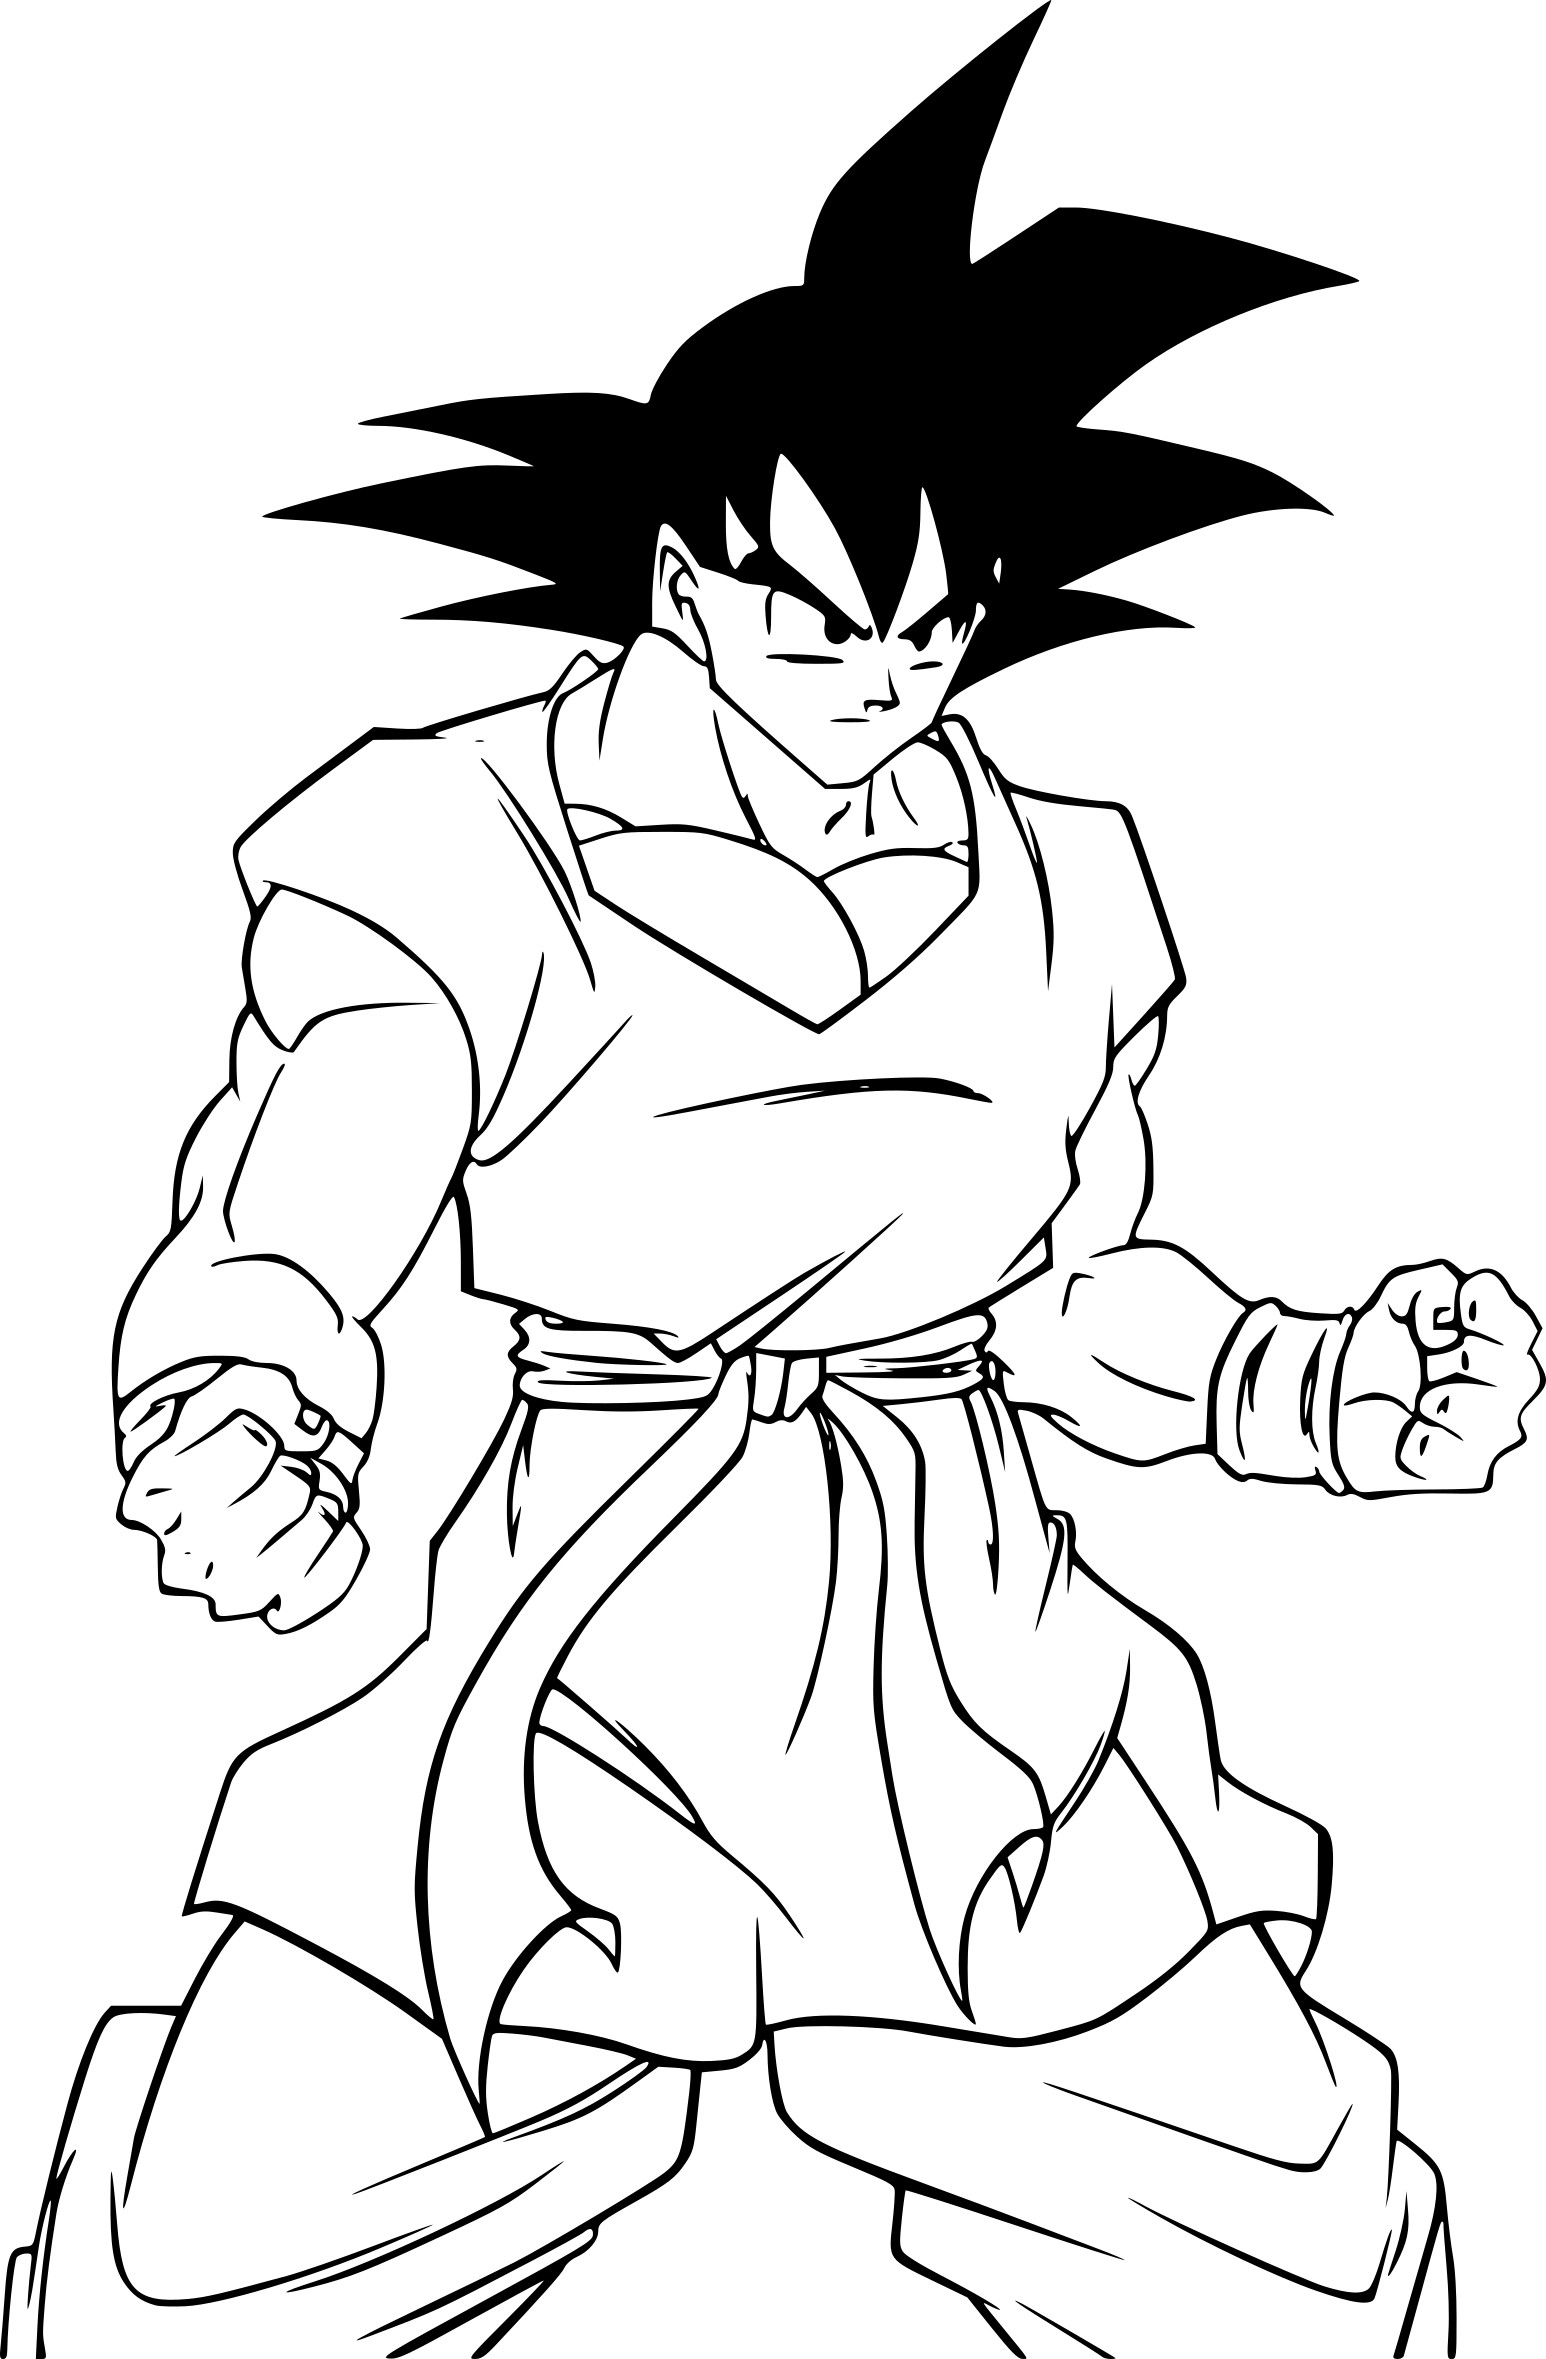 Coloriage son goku dragon ball z imprimer sur coloriages info - Dessin sangoku ...